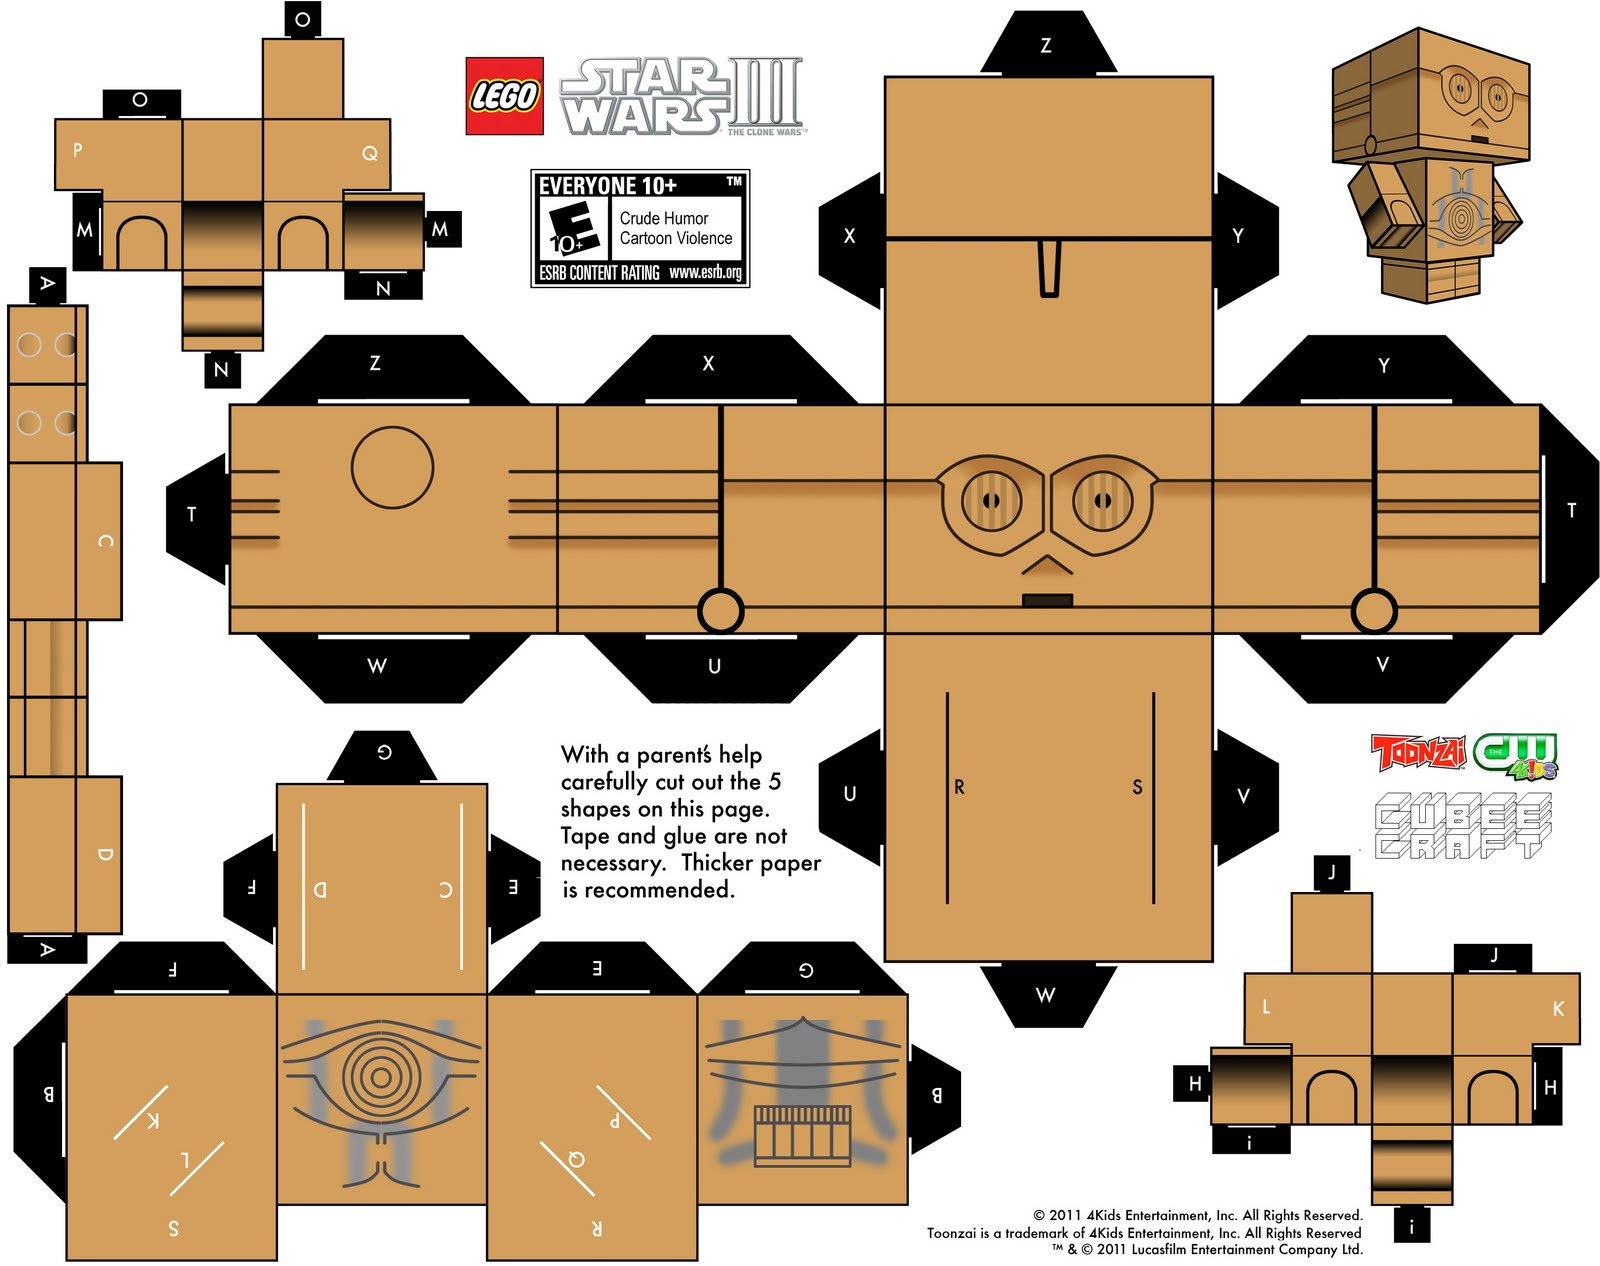 papercraft c3po guerra de las galaxias. Black Bedroom Furniture Sets. Home Design Ideas